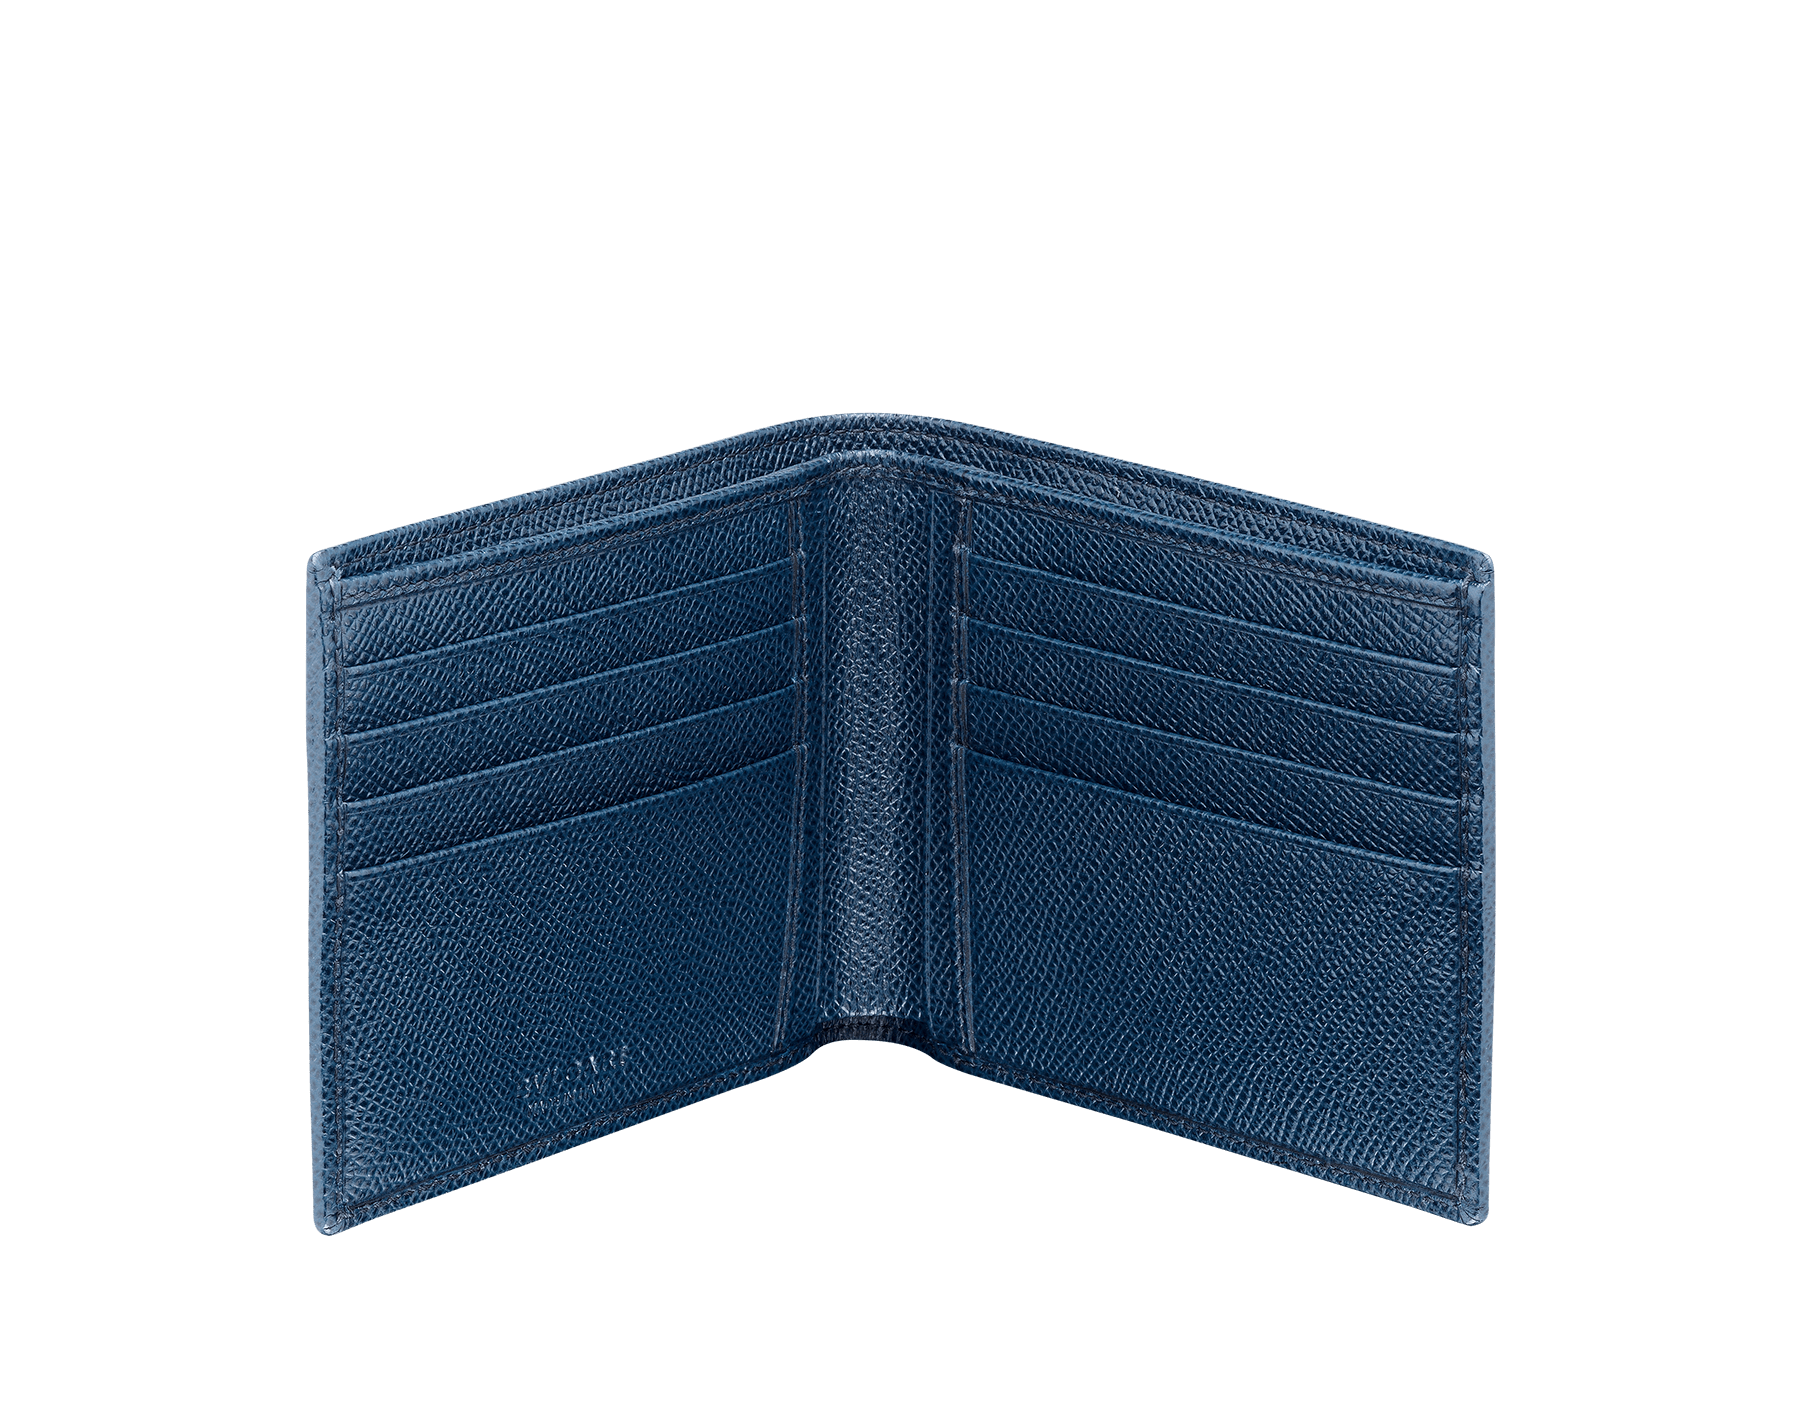 Wallet hipster for men in denim sapphire grain calf leather with brass palladium plated hardware featuring the BVLGARI BVLGARI motif. Eight credit card slots, two bill compartments and four inside compartments. 39320 image 2